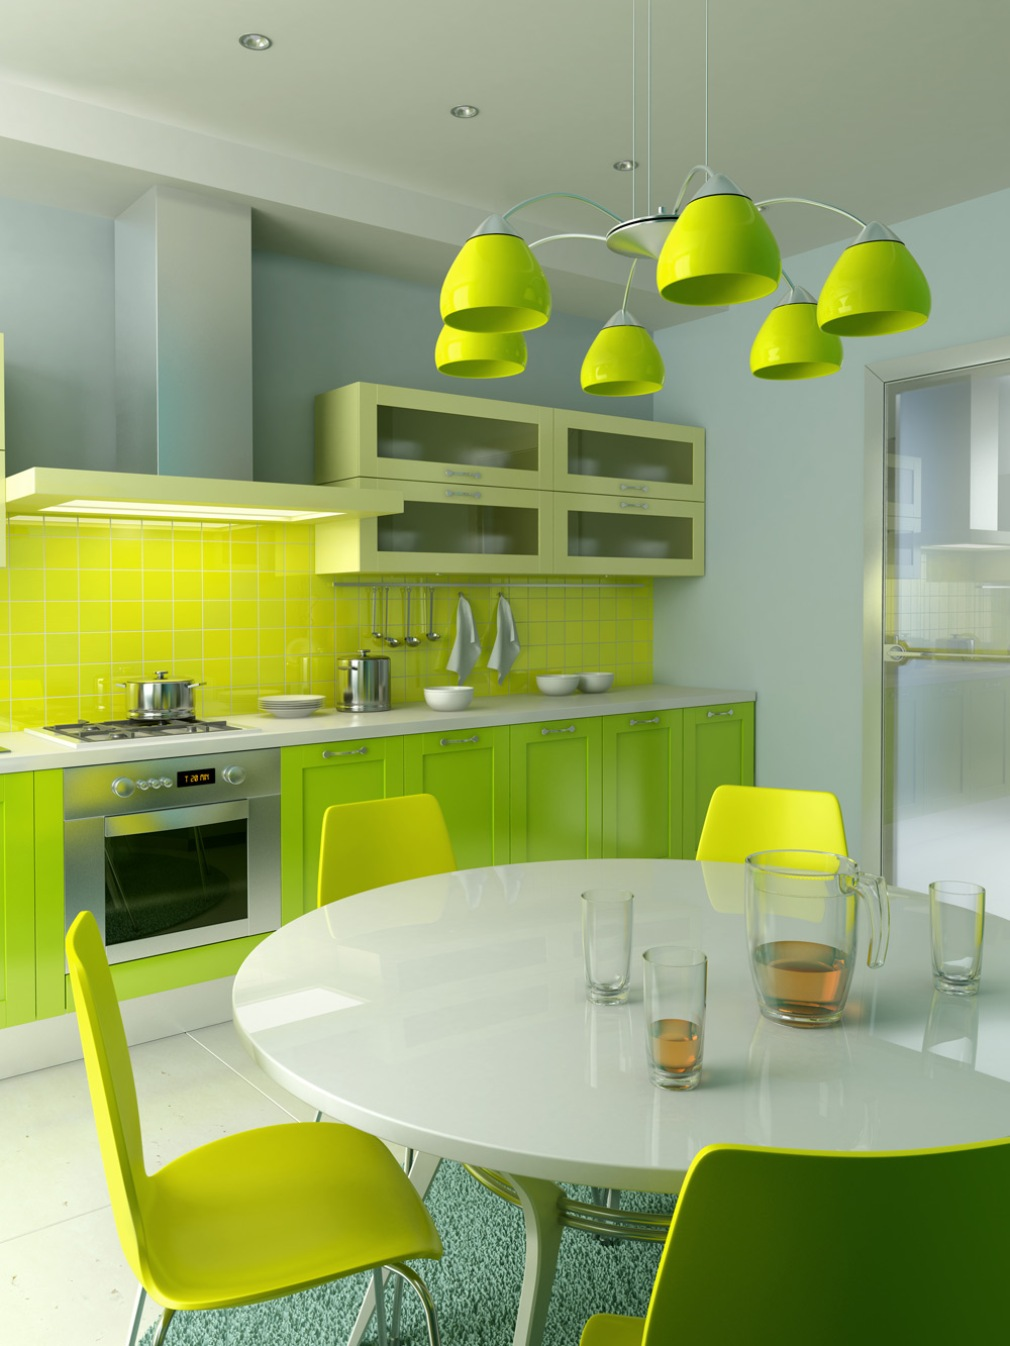 Modern Kitchen Plan for Vibrant Atmosphere in Your Kitchen